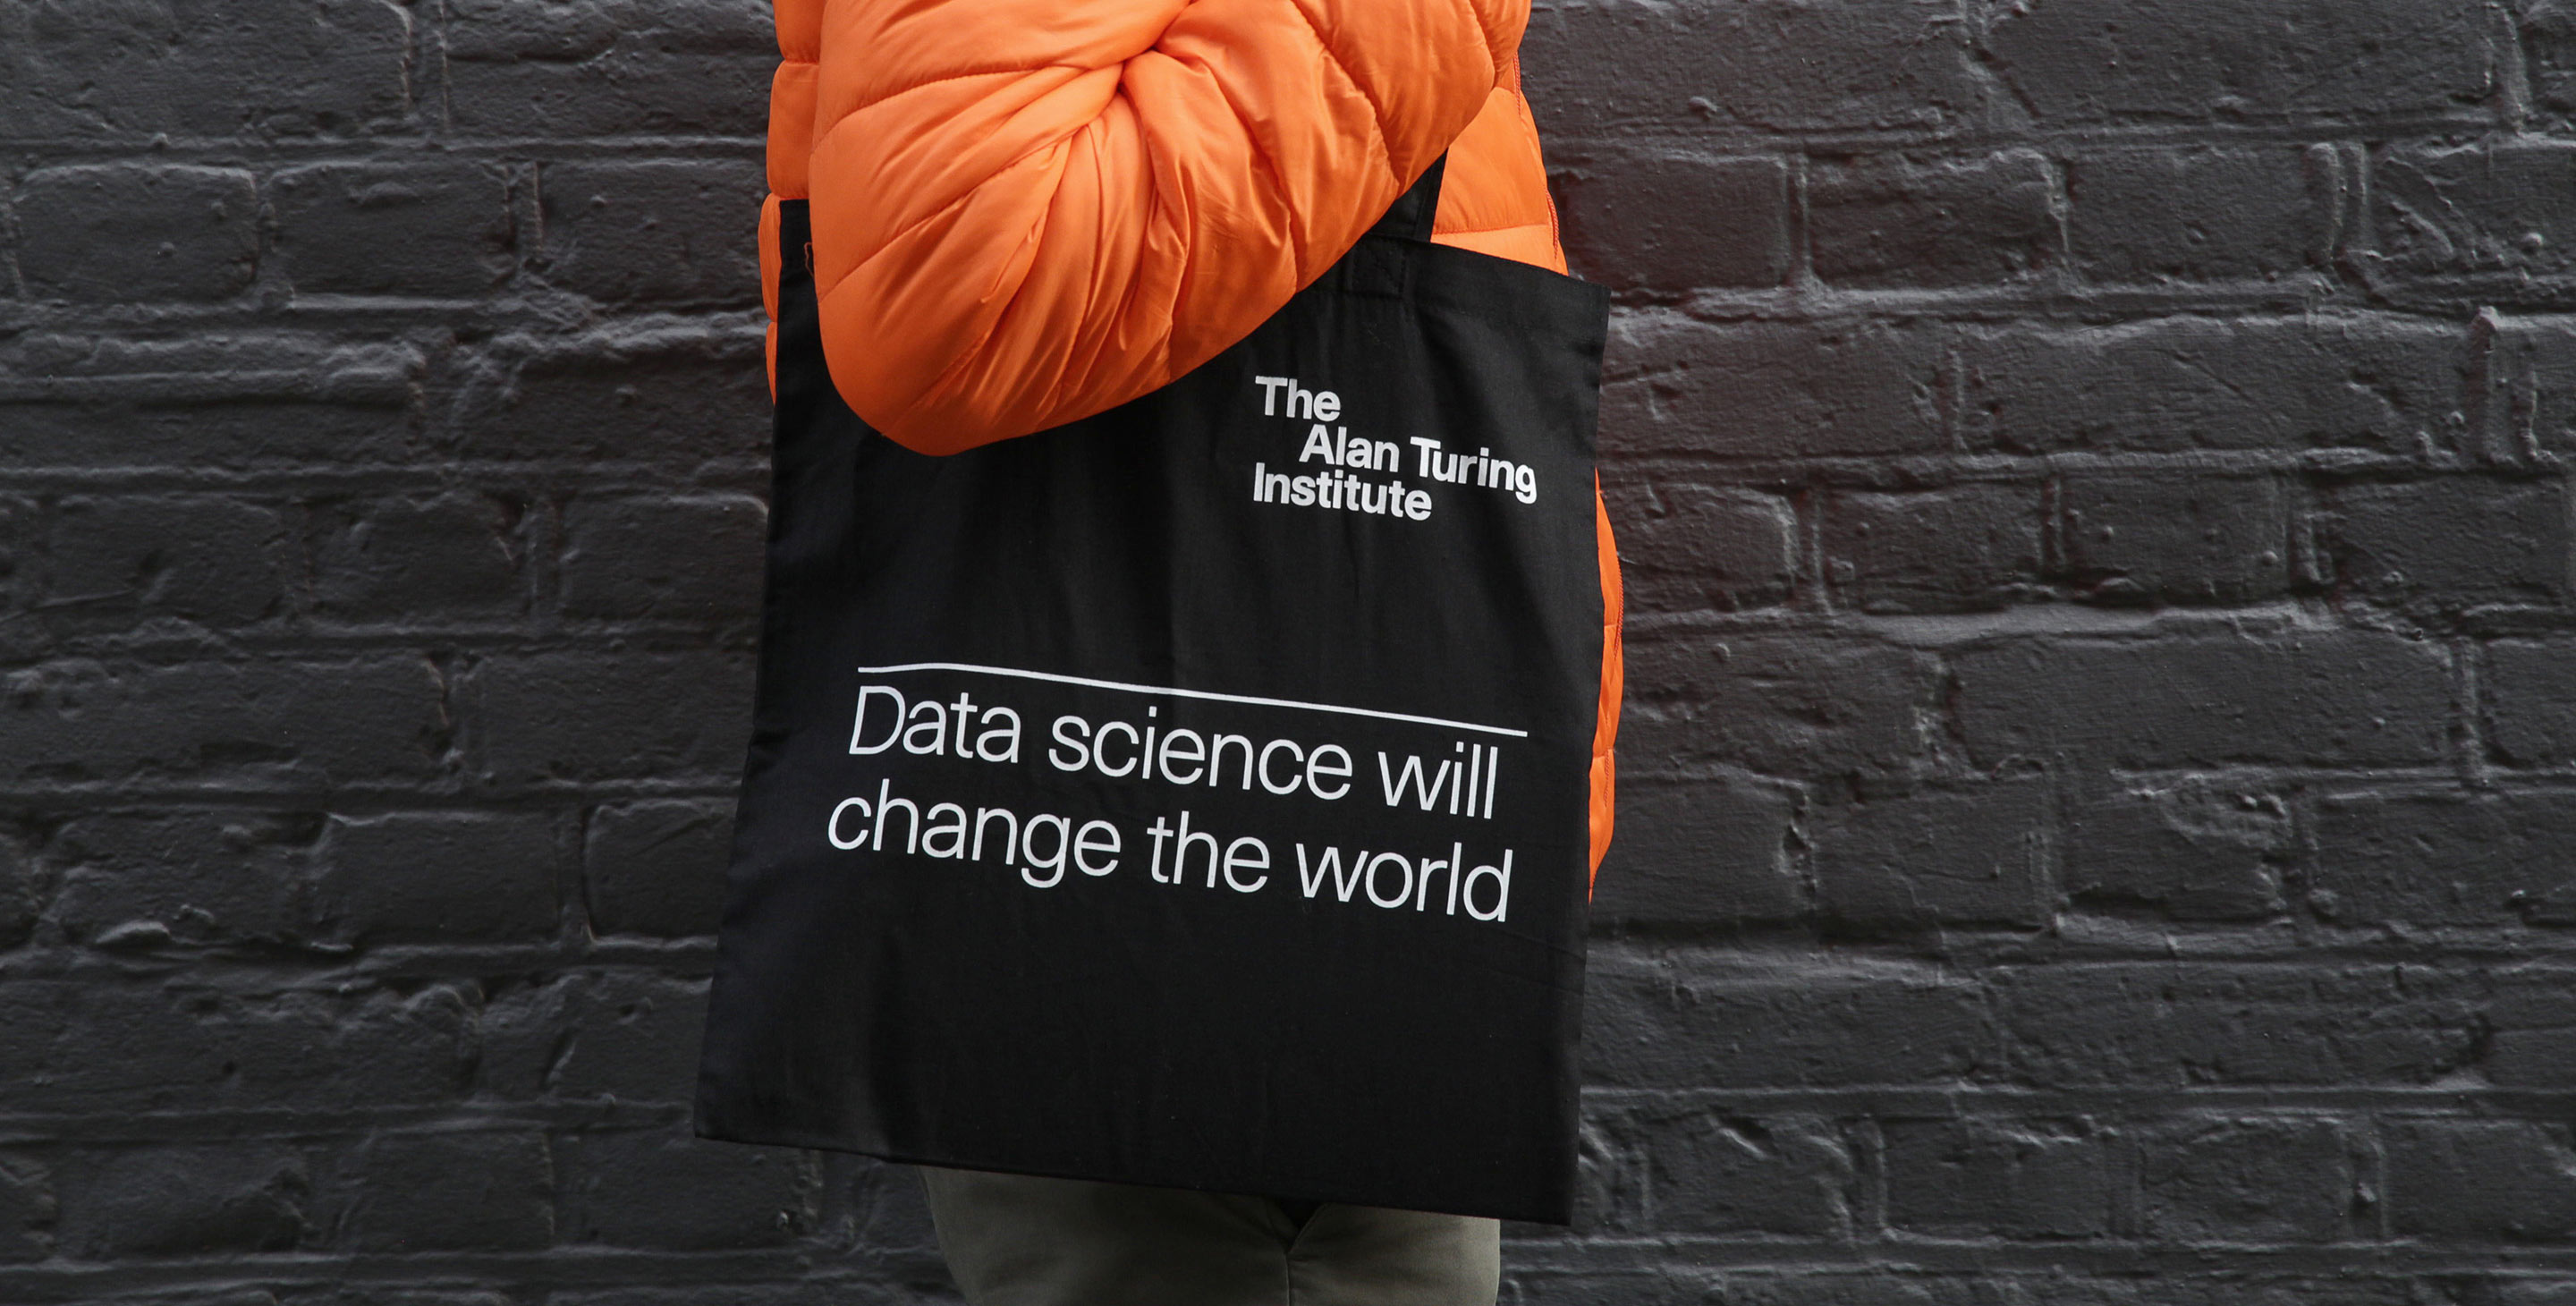 The Alan Turing Institute tote bag